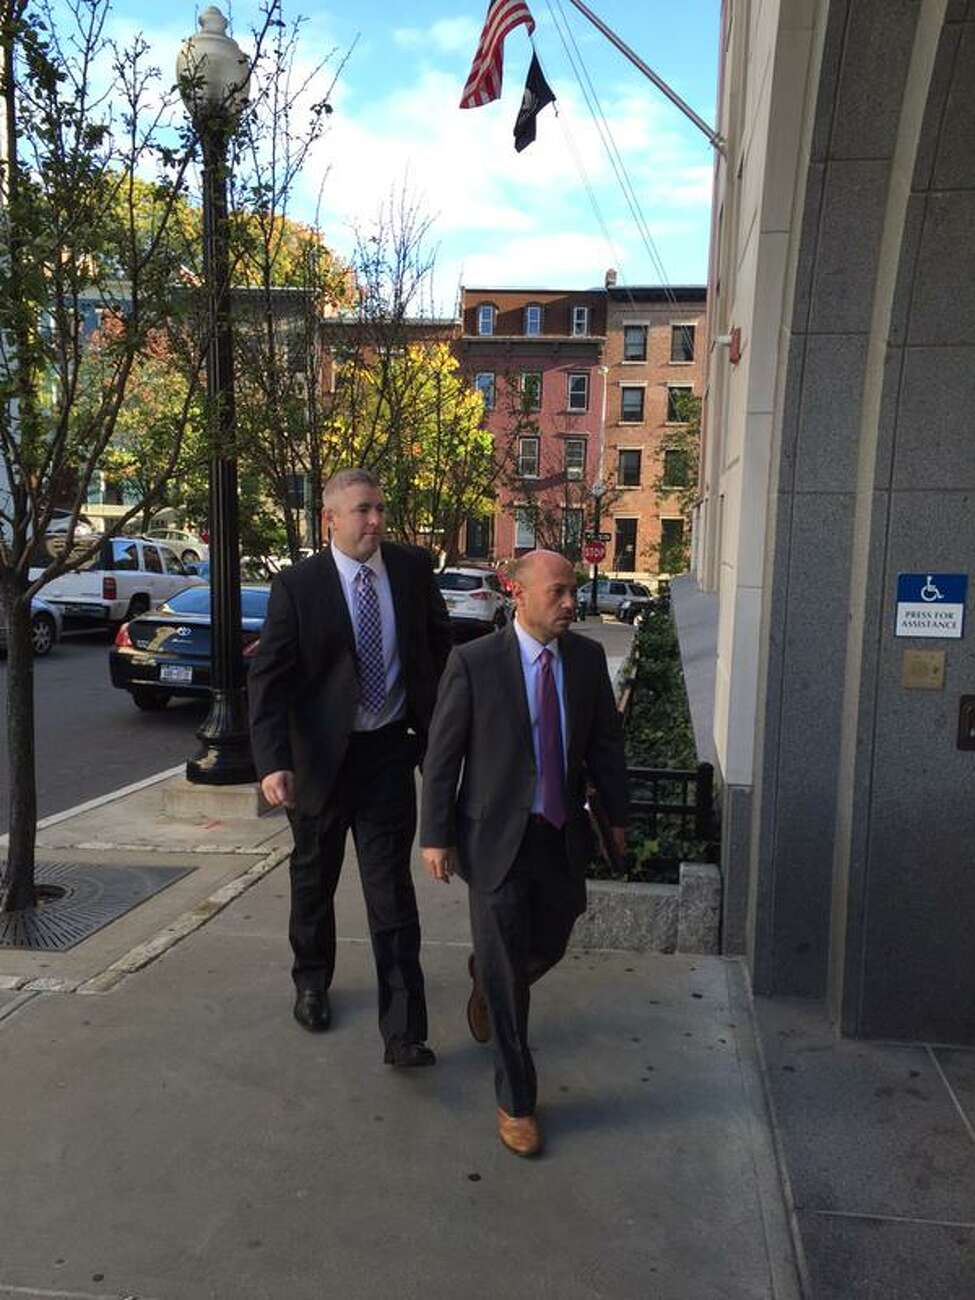 Watervliet Police Officer Joshua Spratt enters Albany County Court with his attorney Andrew Safranko on Thursday, Oct. 8, 2015, in Albany, NY. (Robert Gavin/Times Union)